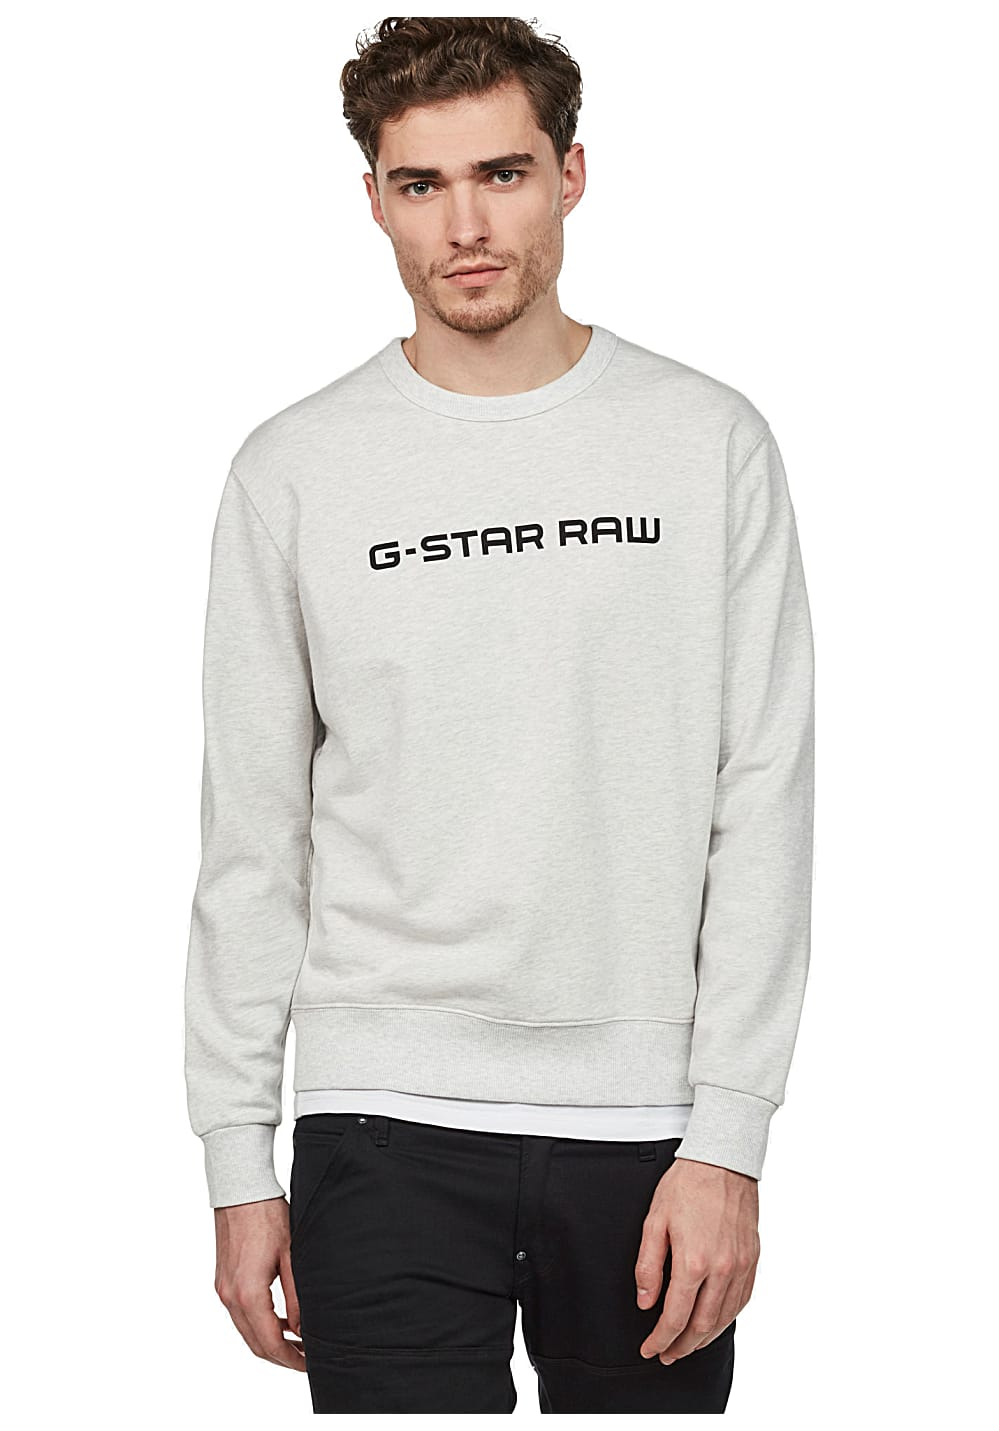 Star Loaq Sports G Blanc Sweat R Pour Homme Planet gHwqd6n